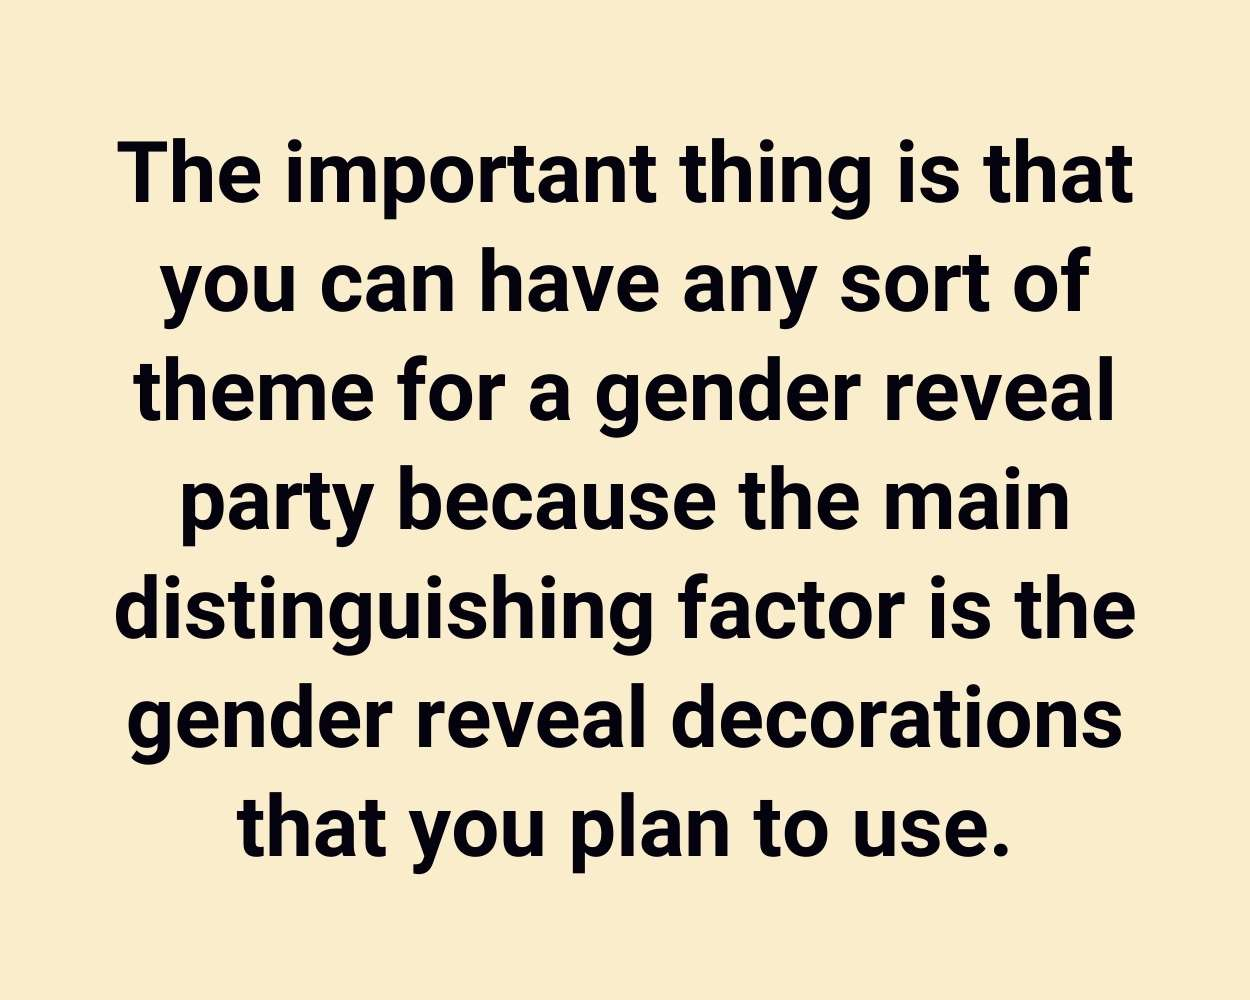 The important thing is that you can have any sort of theme for a gender reveal party because the main distinguishing factor is the gender reveal decorations that you plan to use.